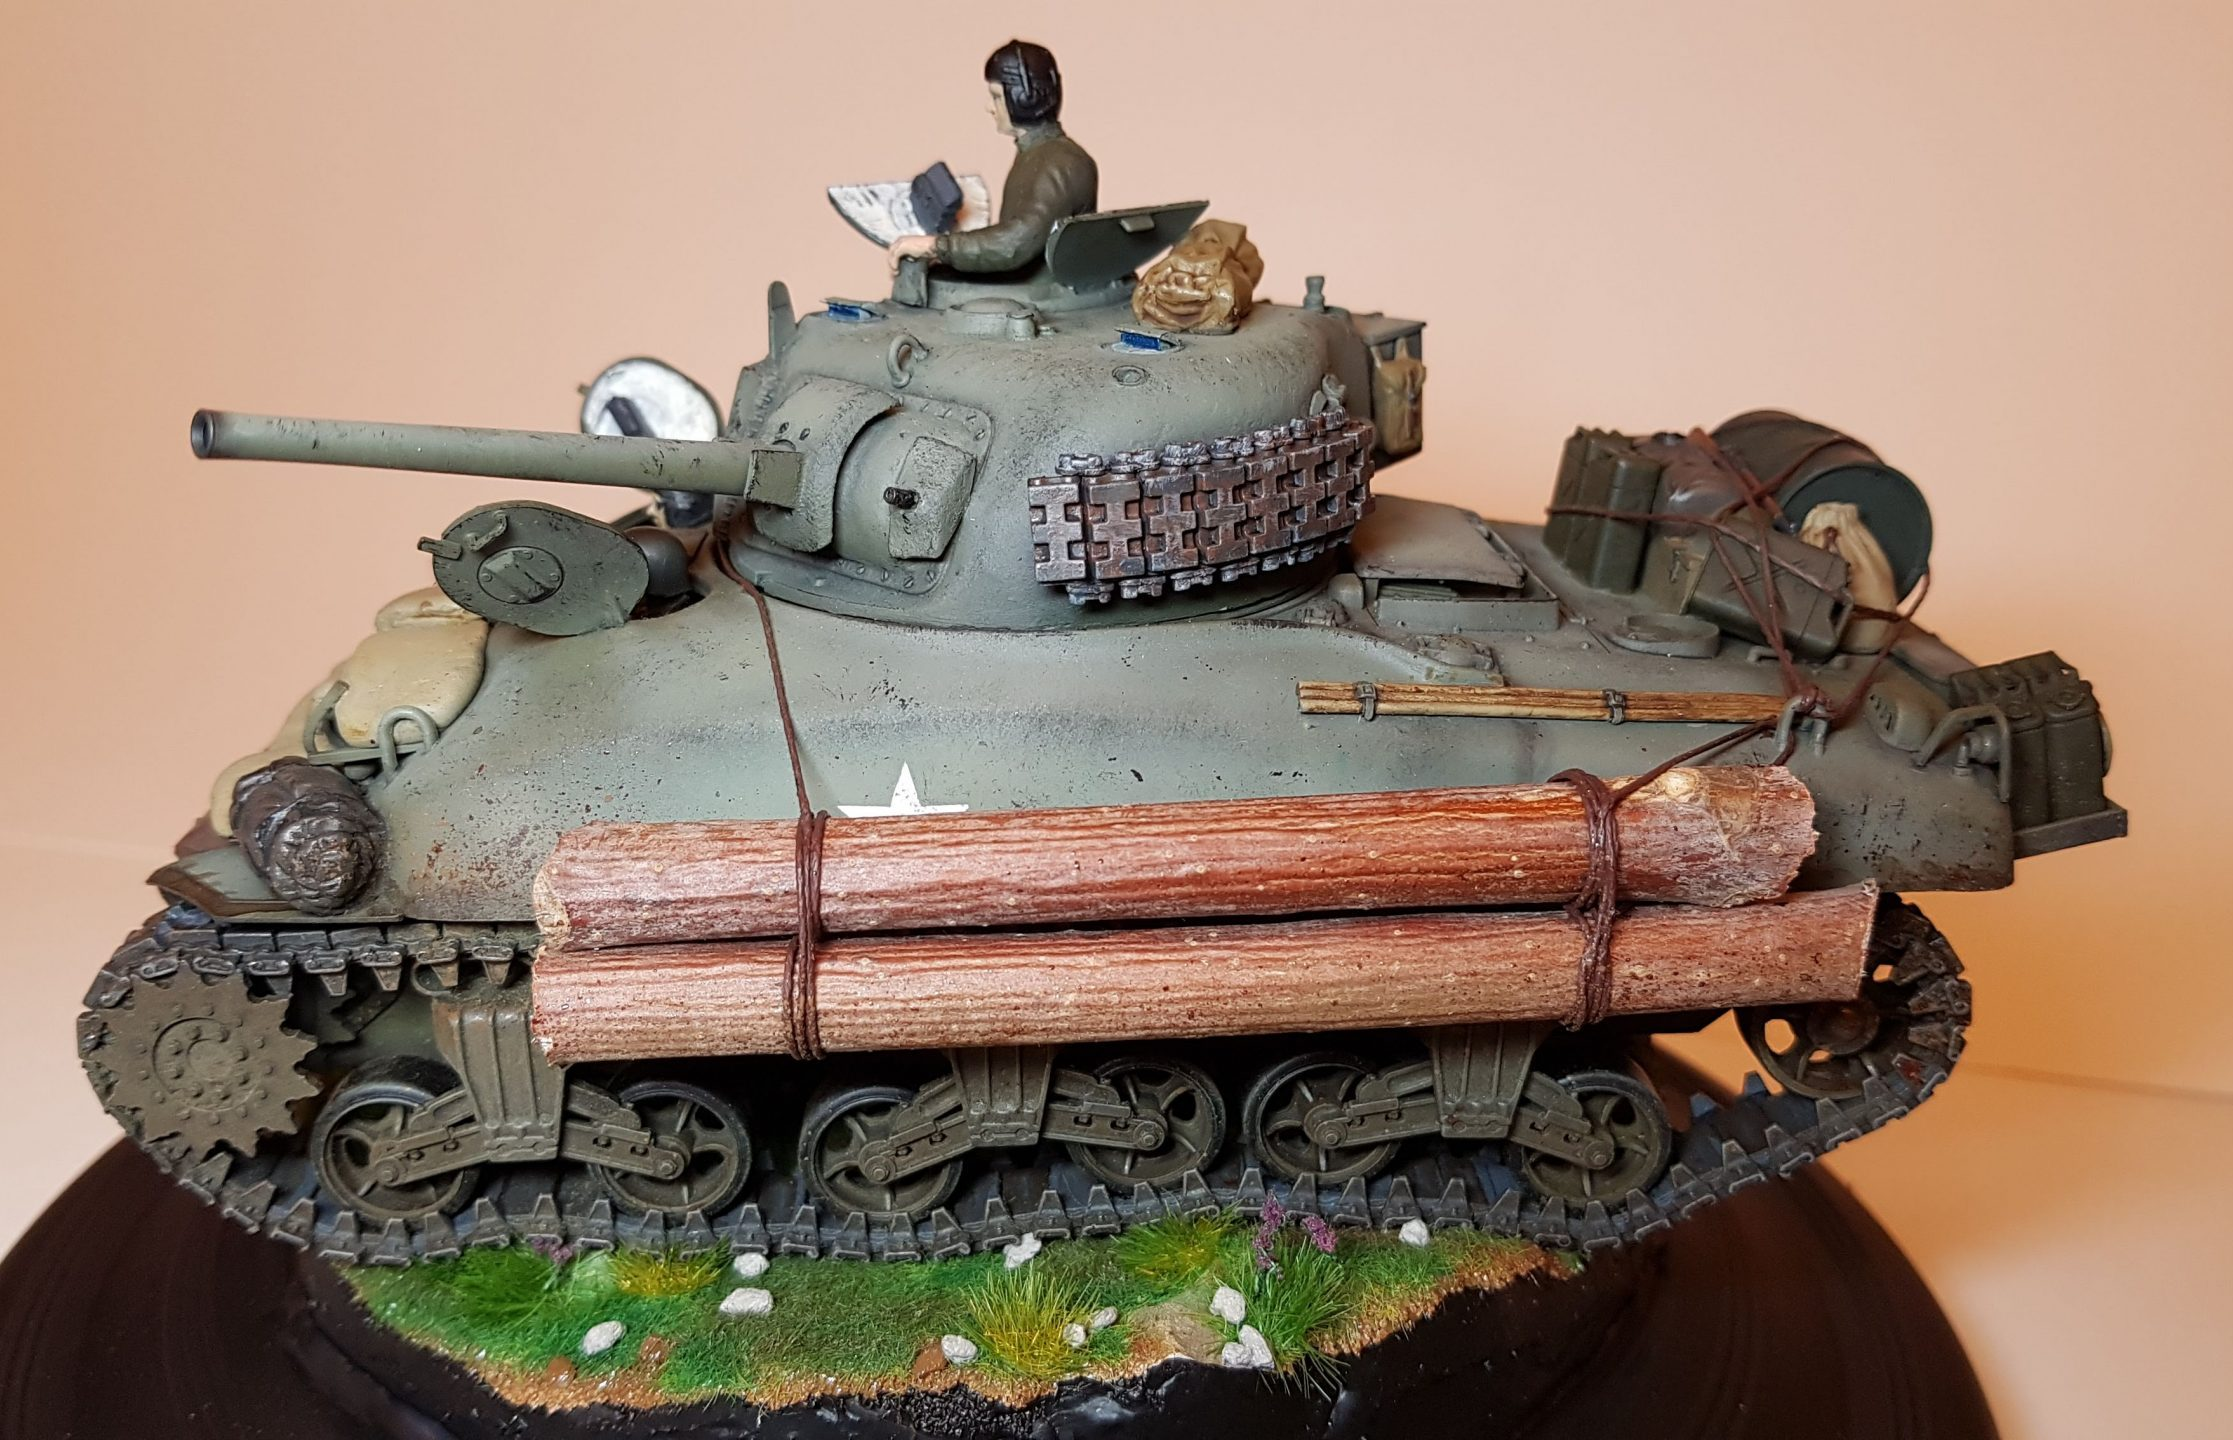 Kit-bashed - M4 Sherman (WW2) - Side View - 1/35 Scale - Built By Wright Built - Tamiya, Italeri, Formations, Others, Sculpted